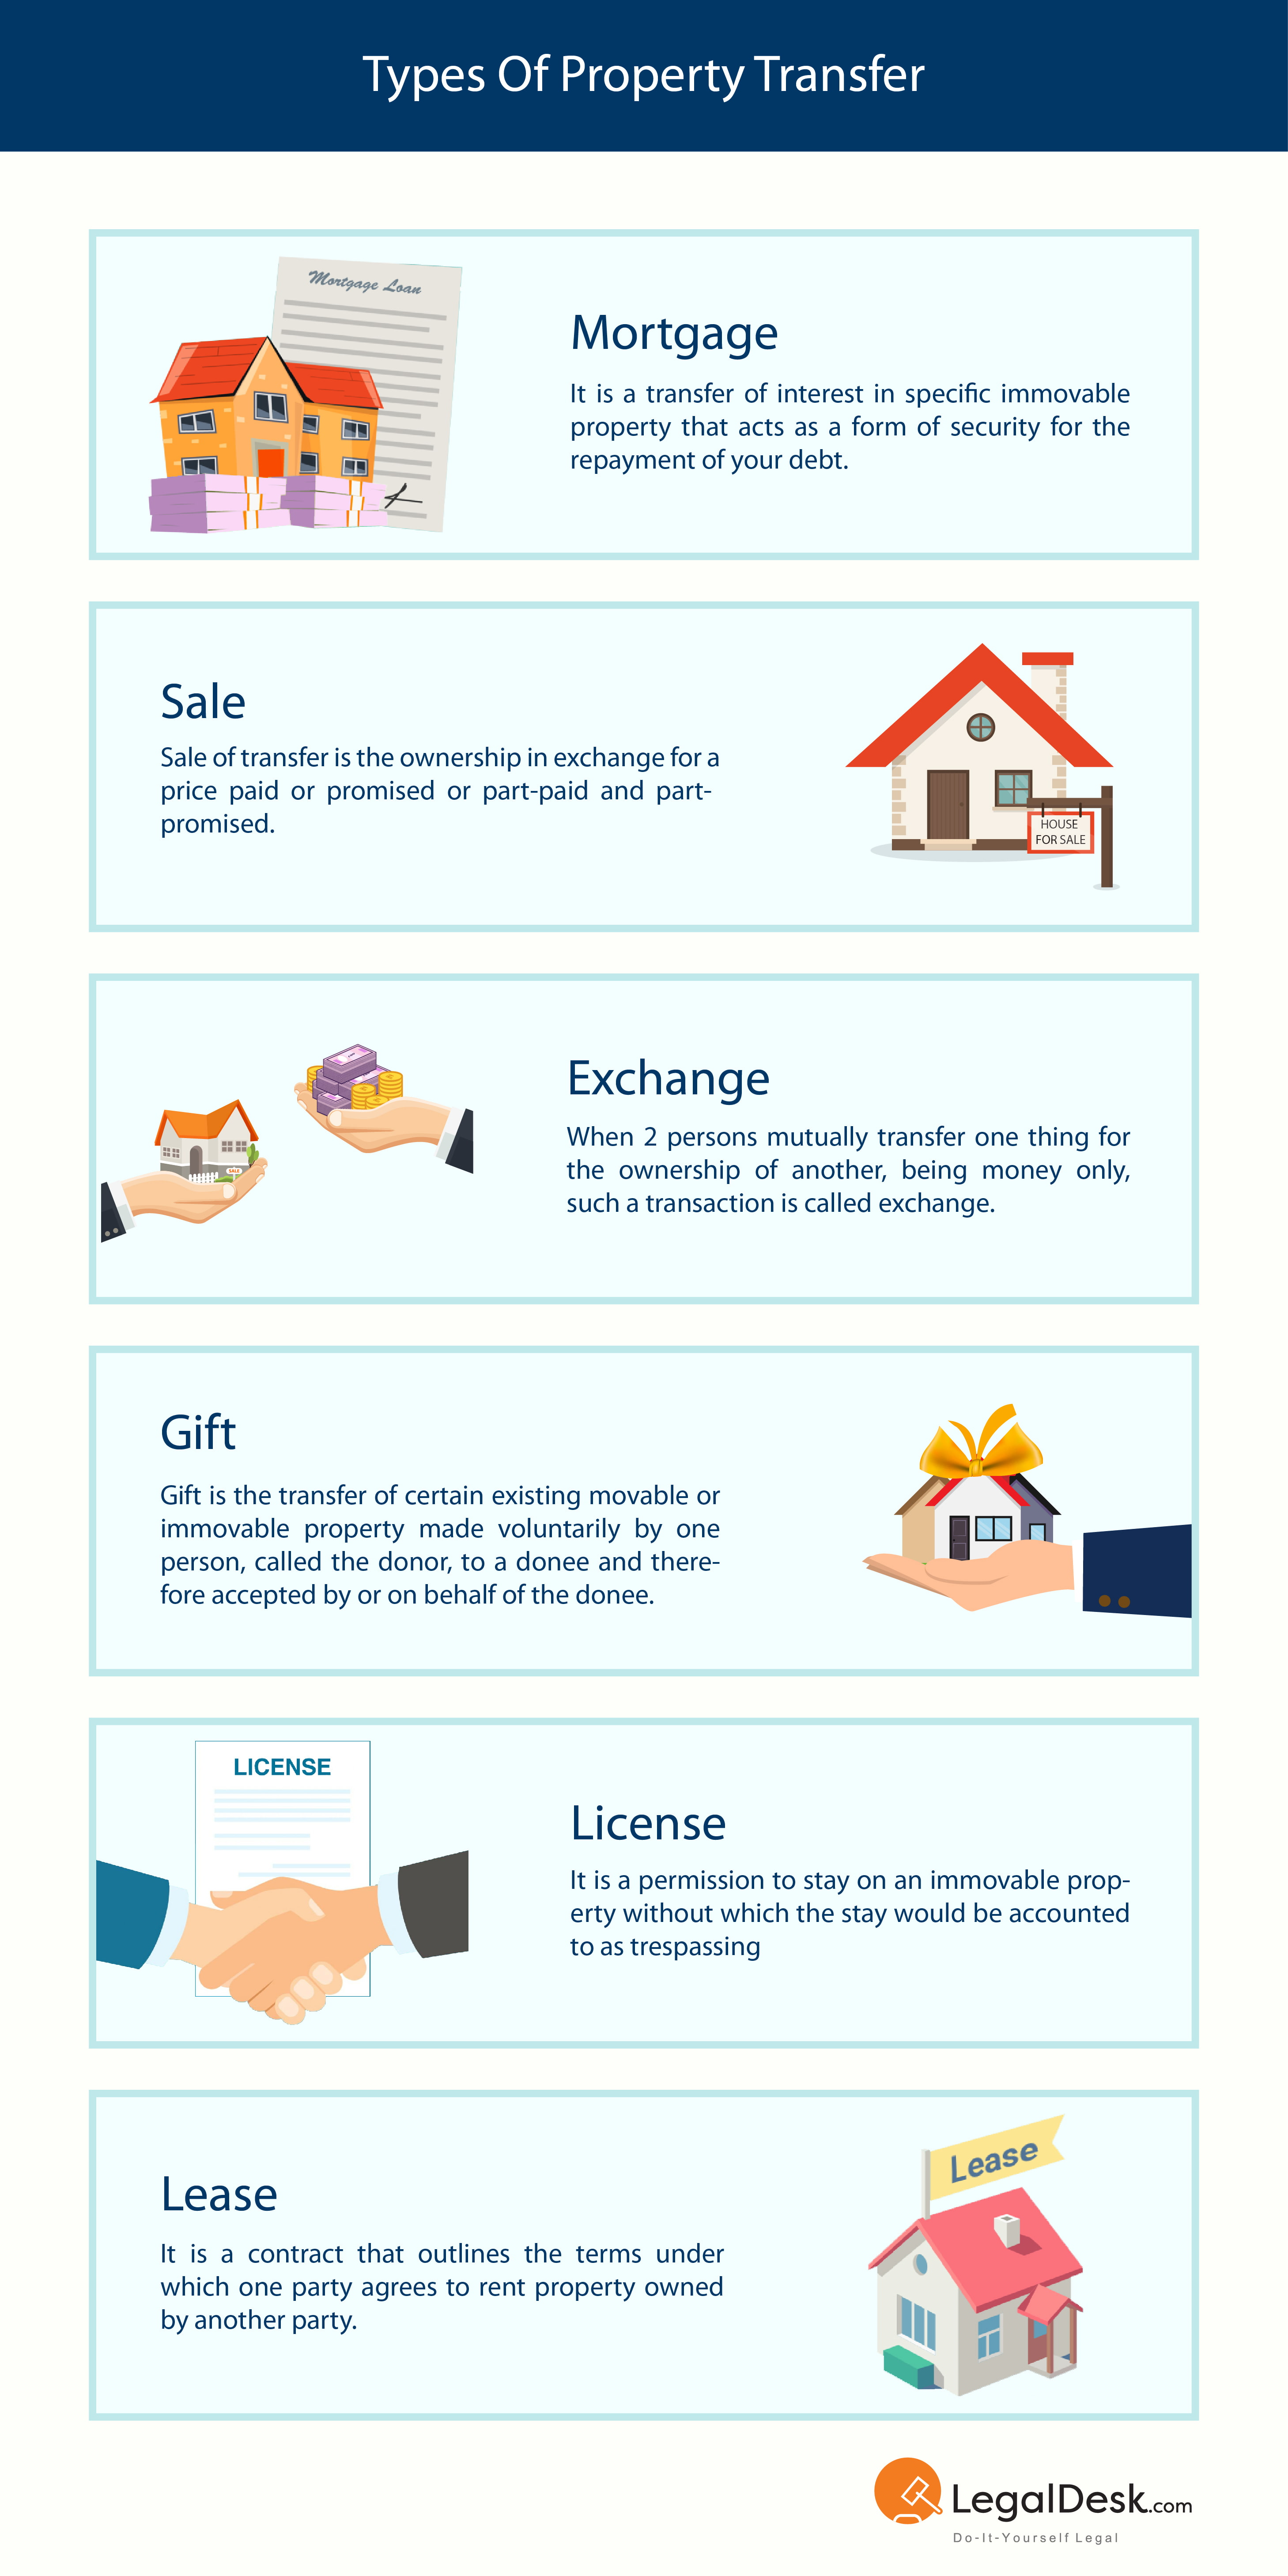 what-are-the-different-types-of-property-transfer